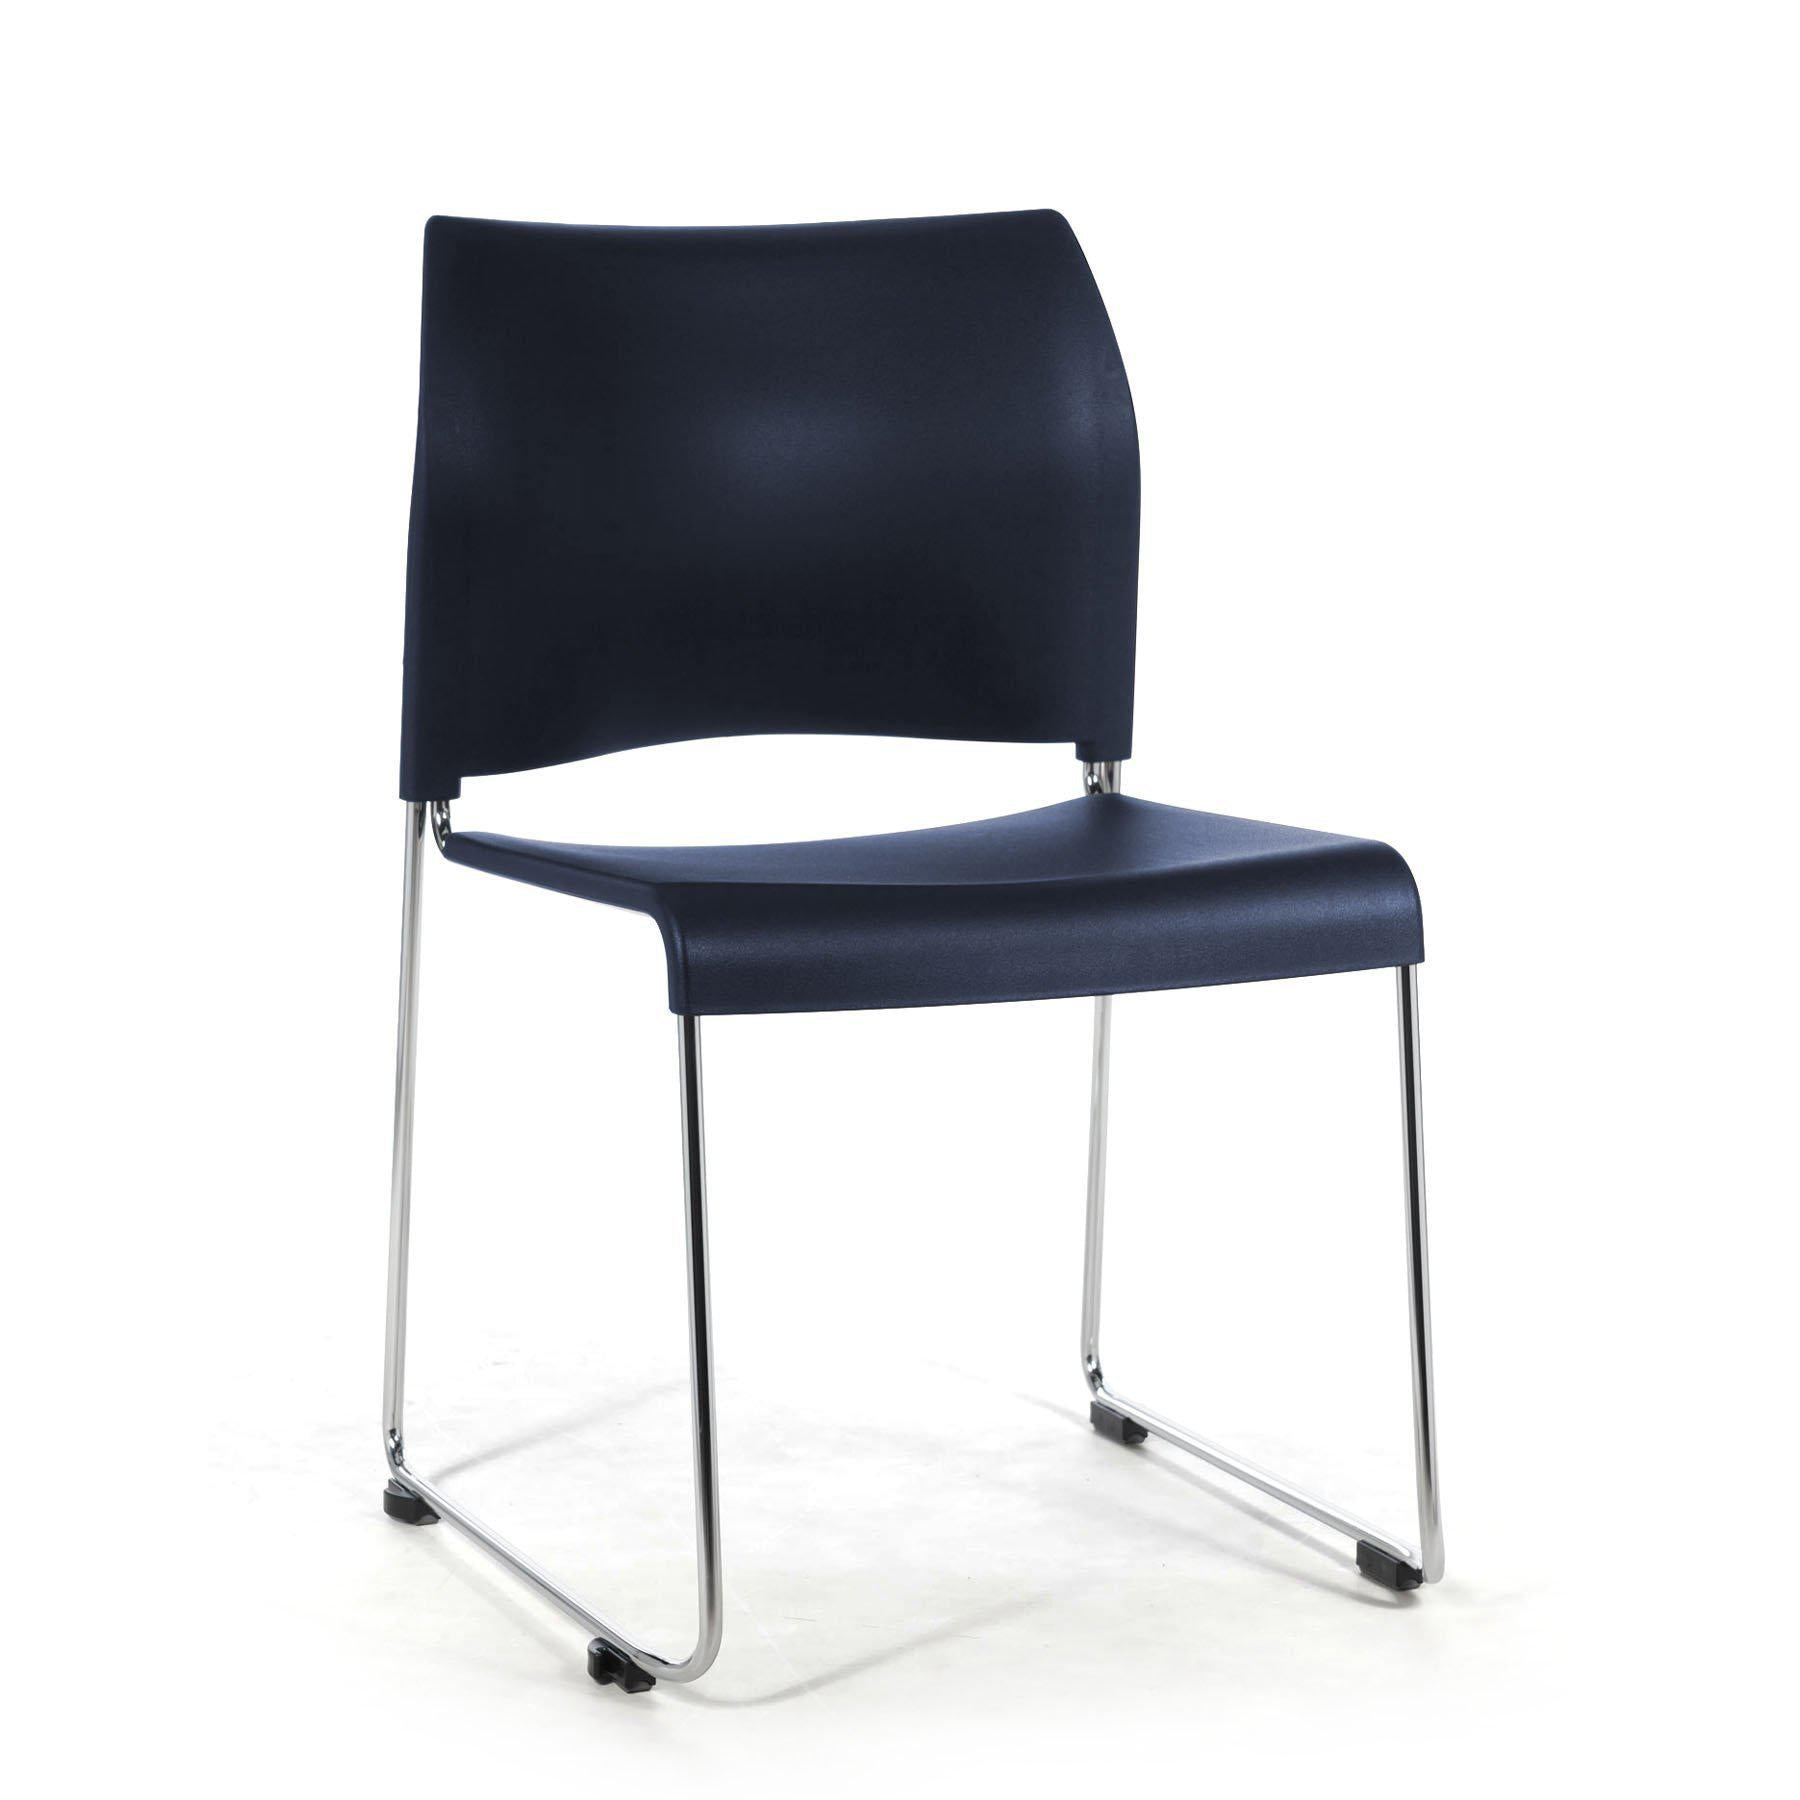 Cafetorium Plastic Stack Chair-Chairs-Navy Blue on Chrome Frame-